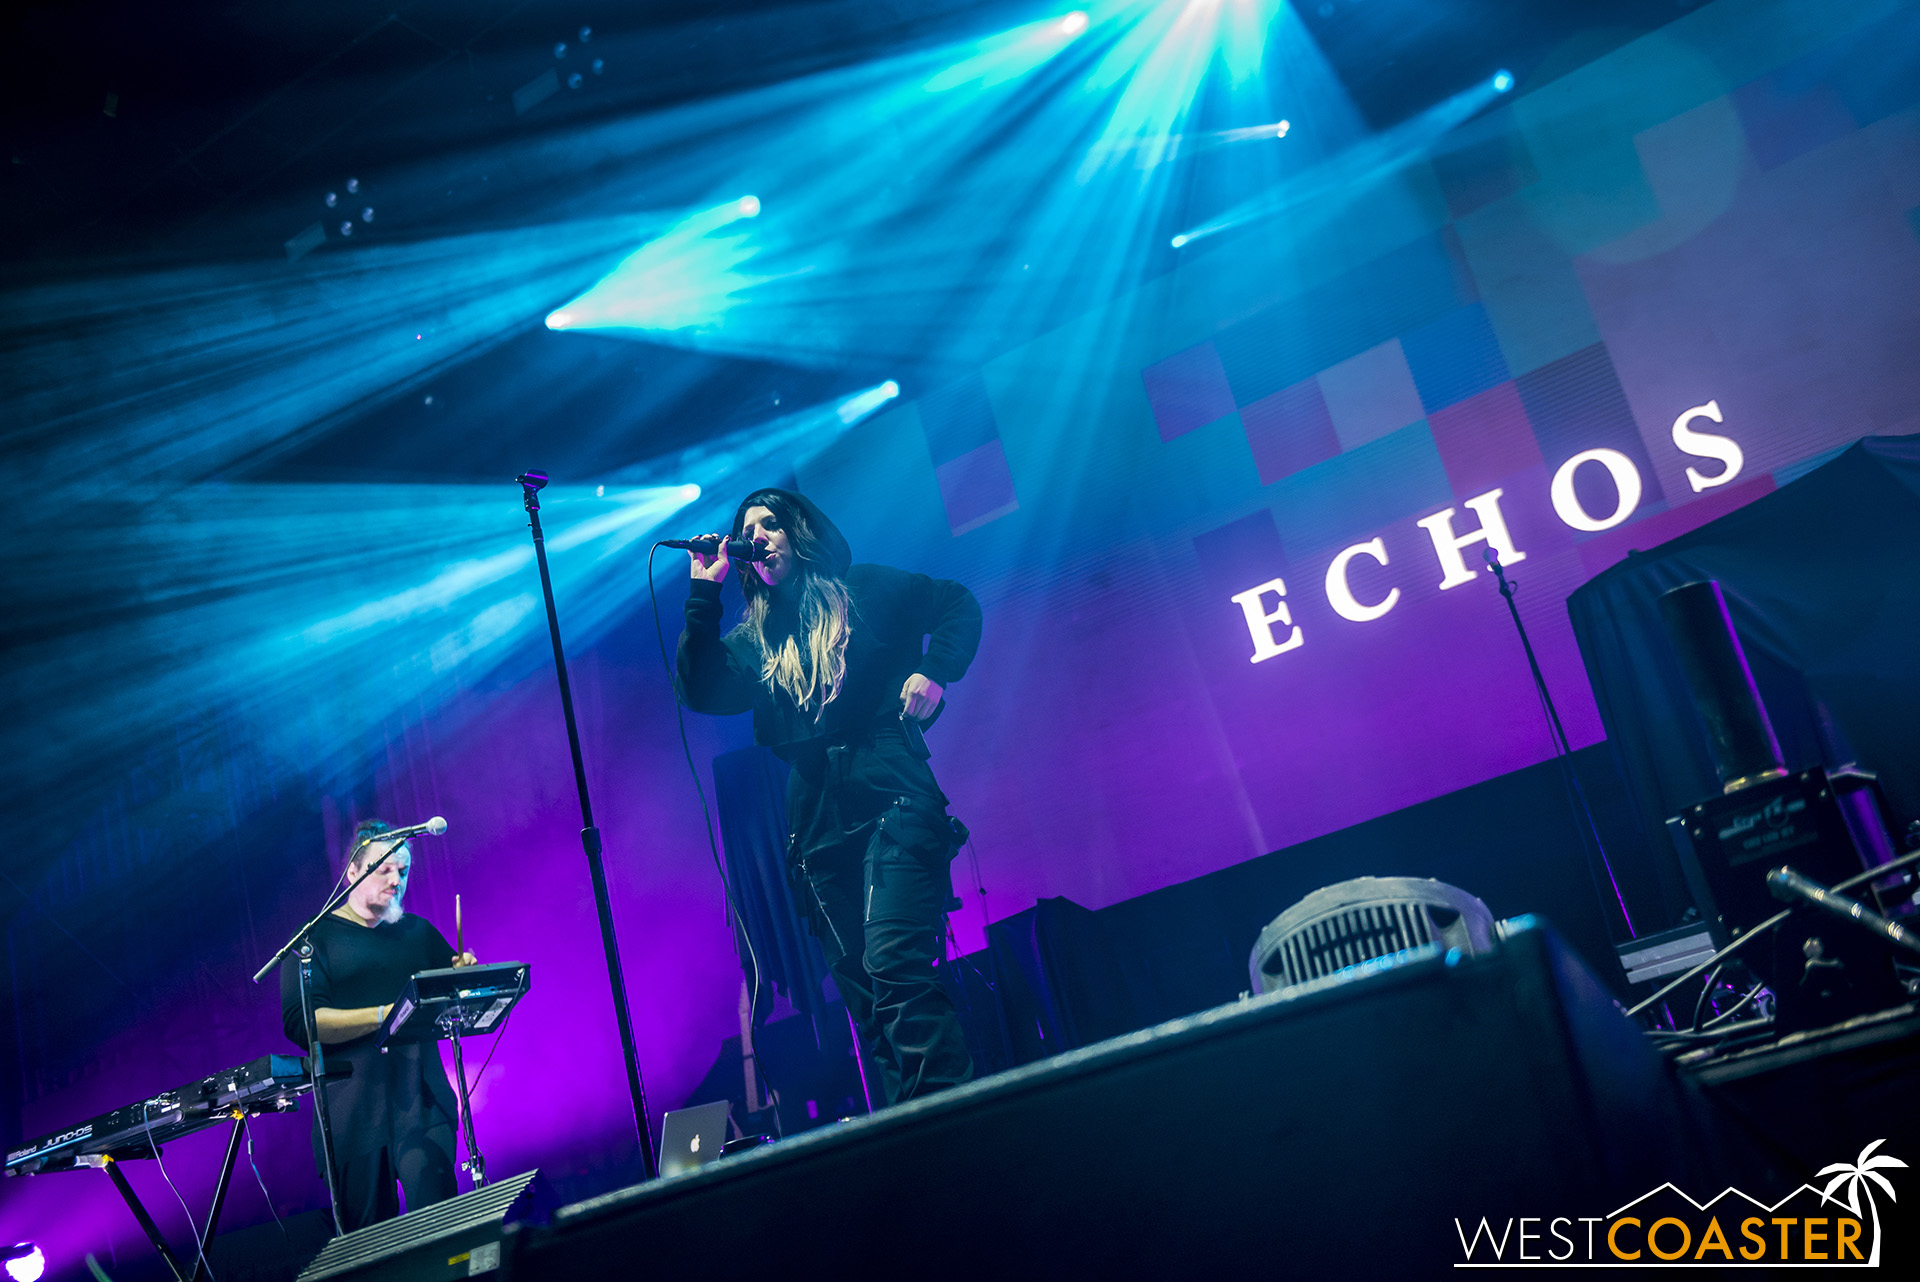 Dance and electronic duo Echos garnered a pretty enthusiastic reception from the late afternoon crowd.